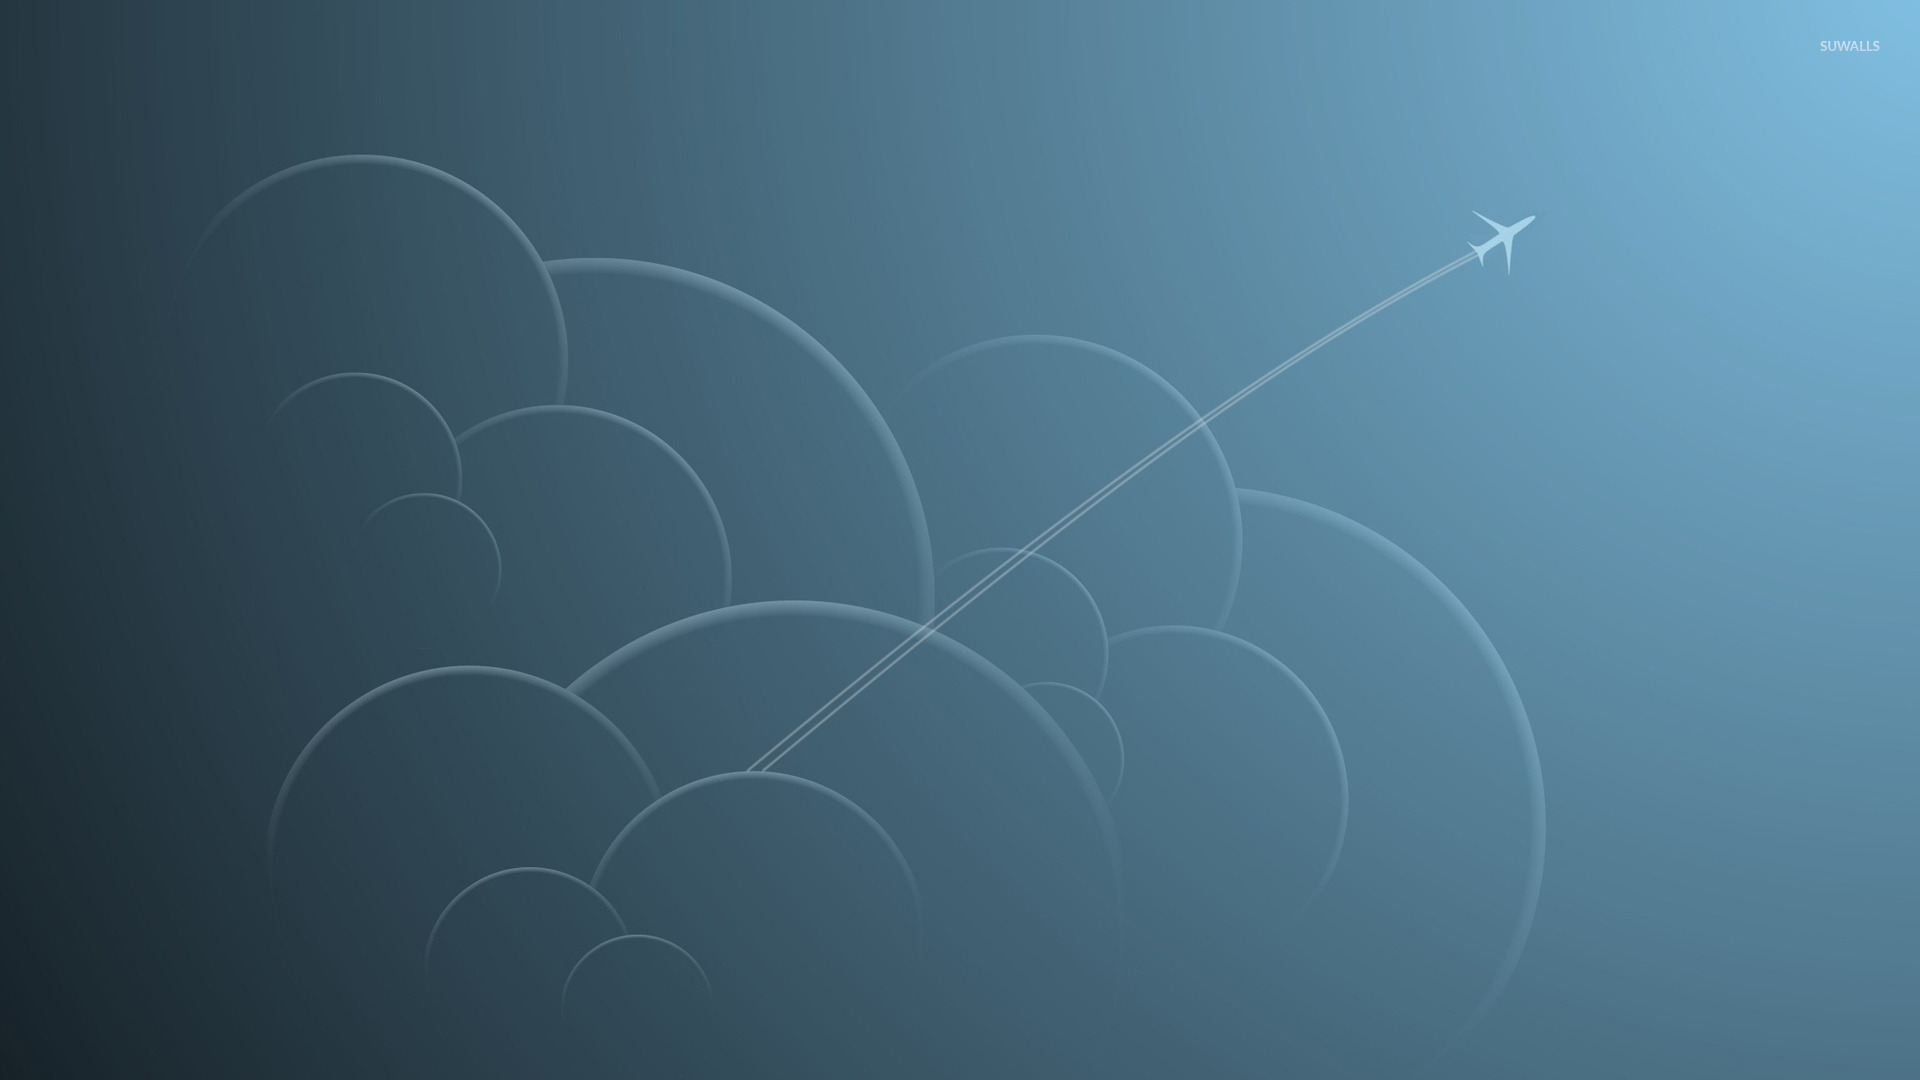 Goku Wallpaper Hd Airplane Through The Clouds Wallpaper Minimalistic